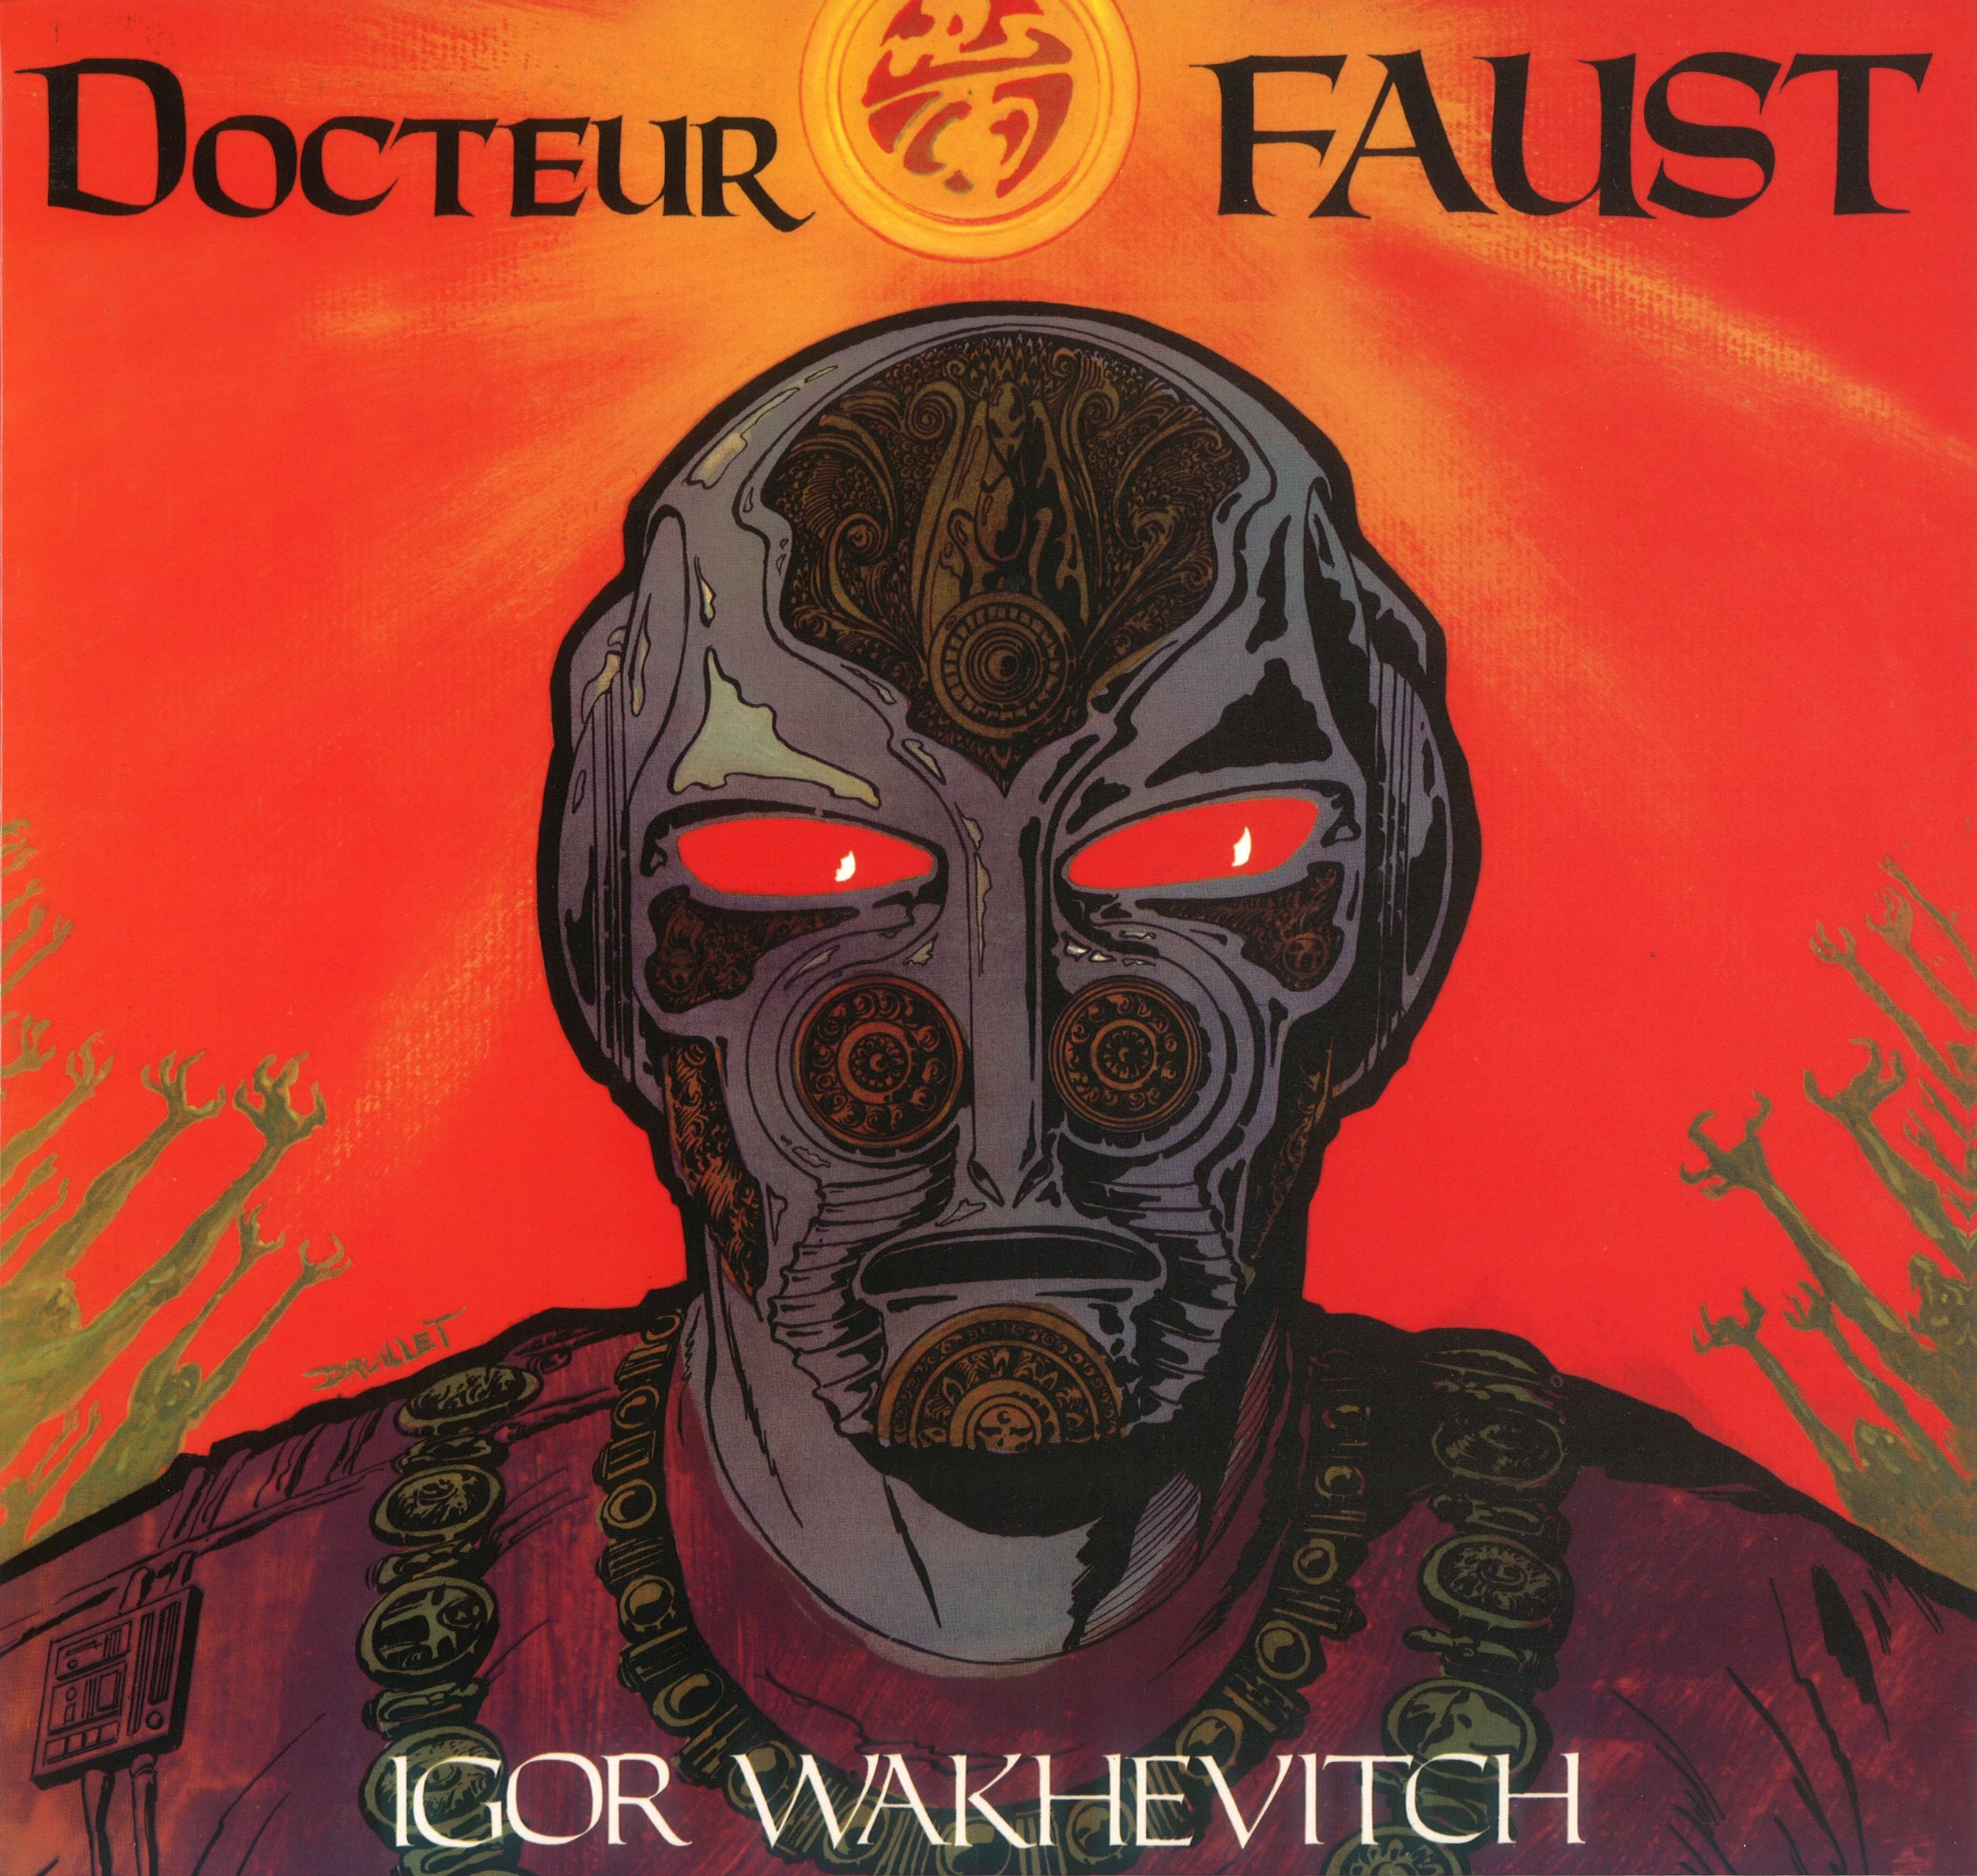 """Dr. FAUST"" (EMI) . . . this album cover by Philippe Druillet (the famous science-fiction cartoonist) became a collector's piece over the years …."